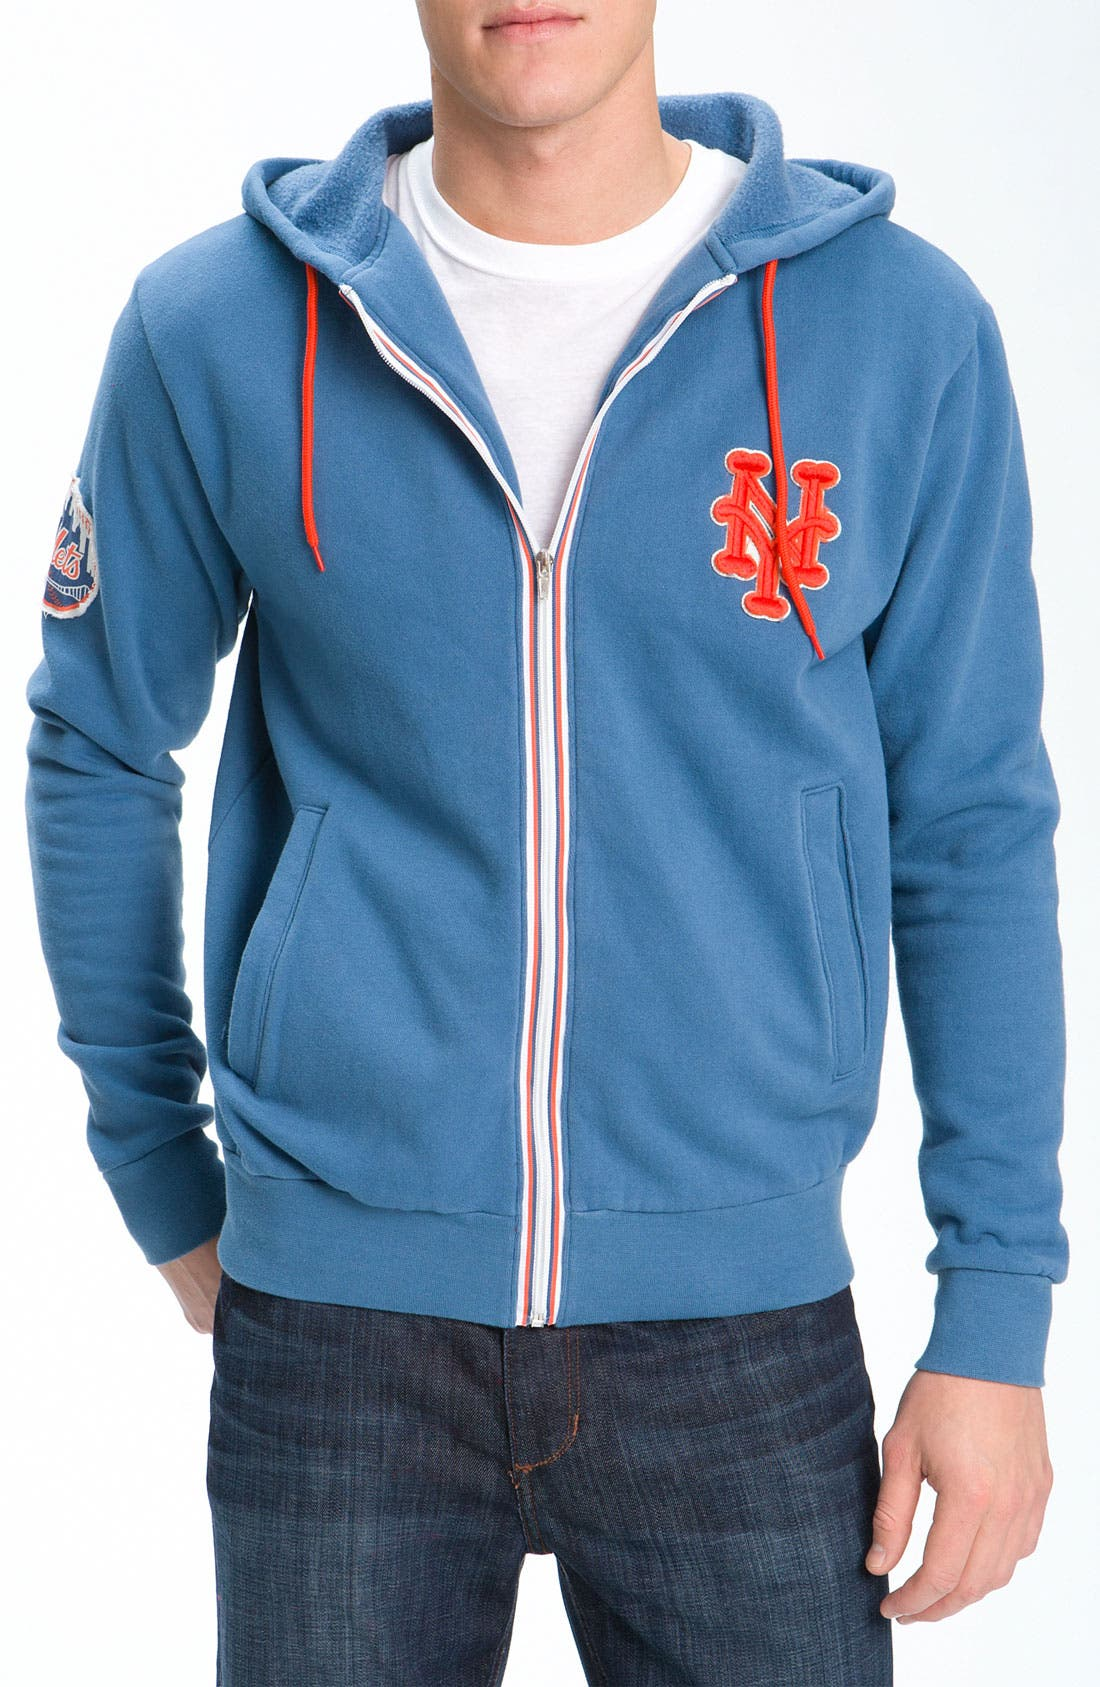 Alternate Image 1 Selected - Wright & Ditson 'New York Mets' Hoodie